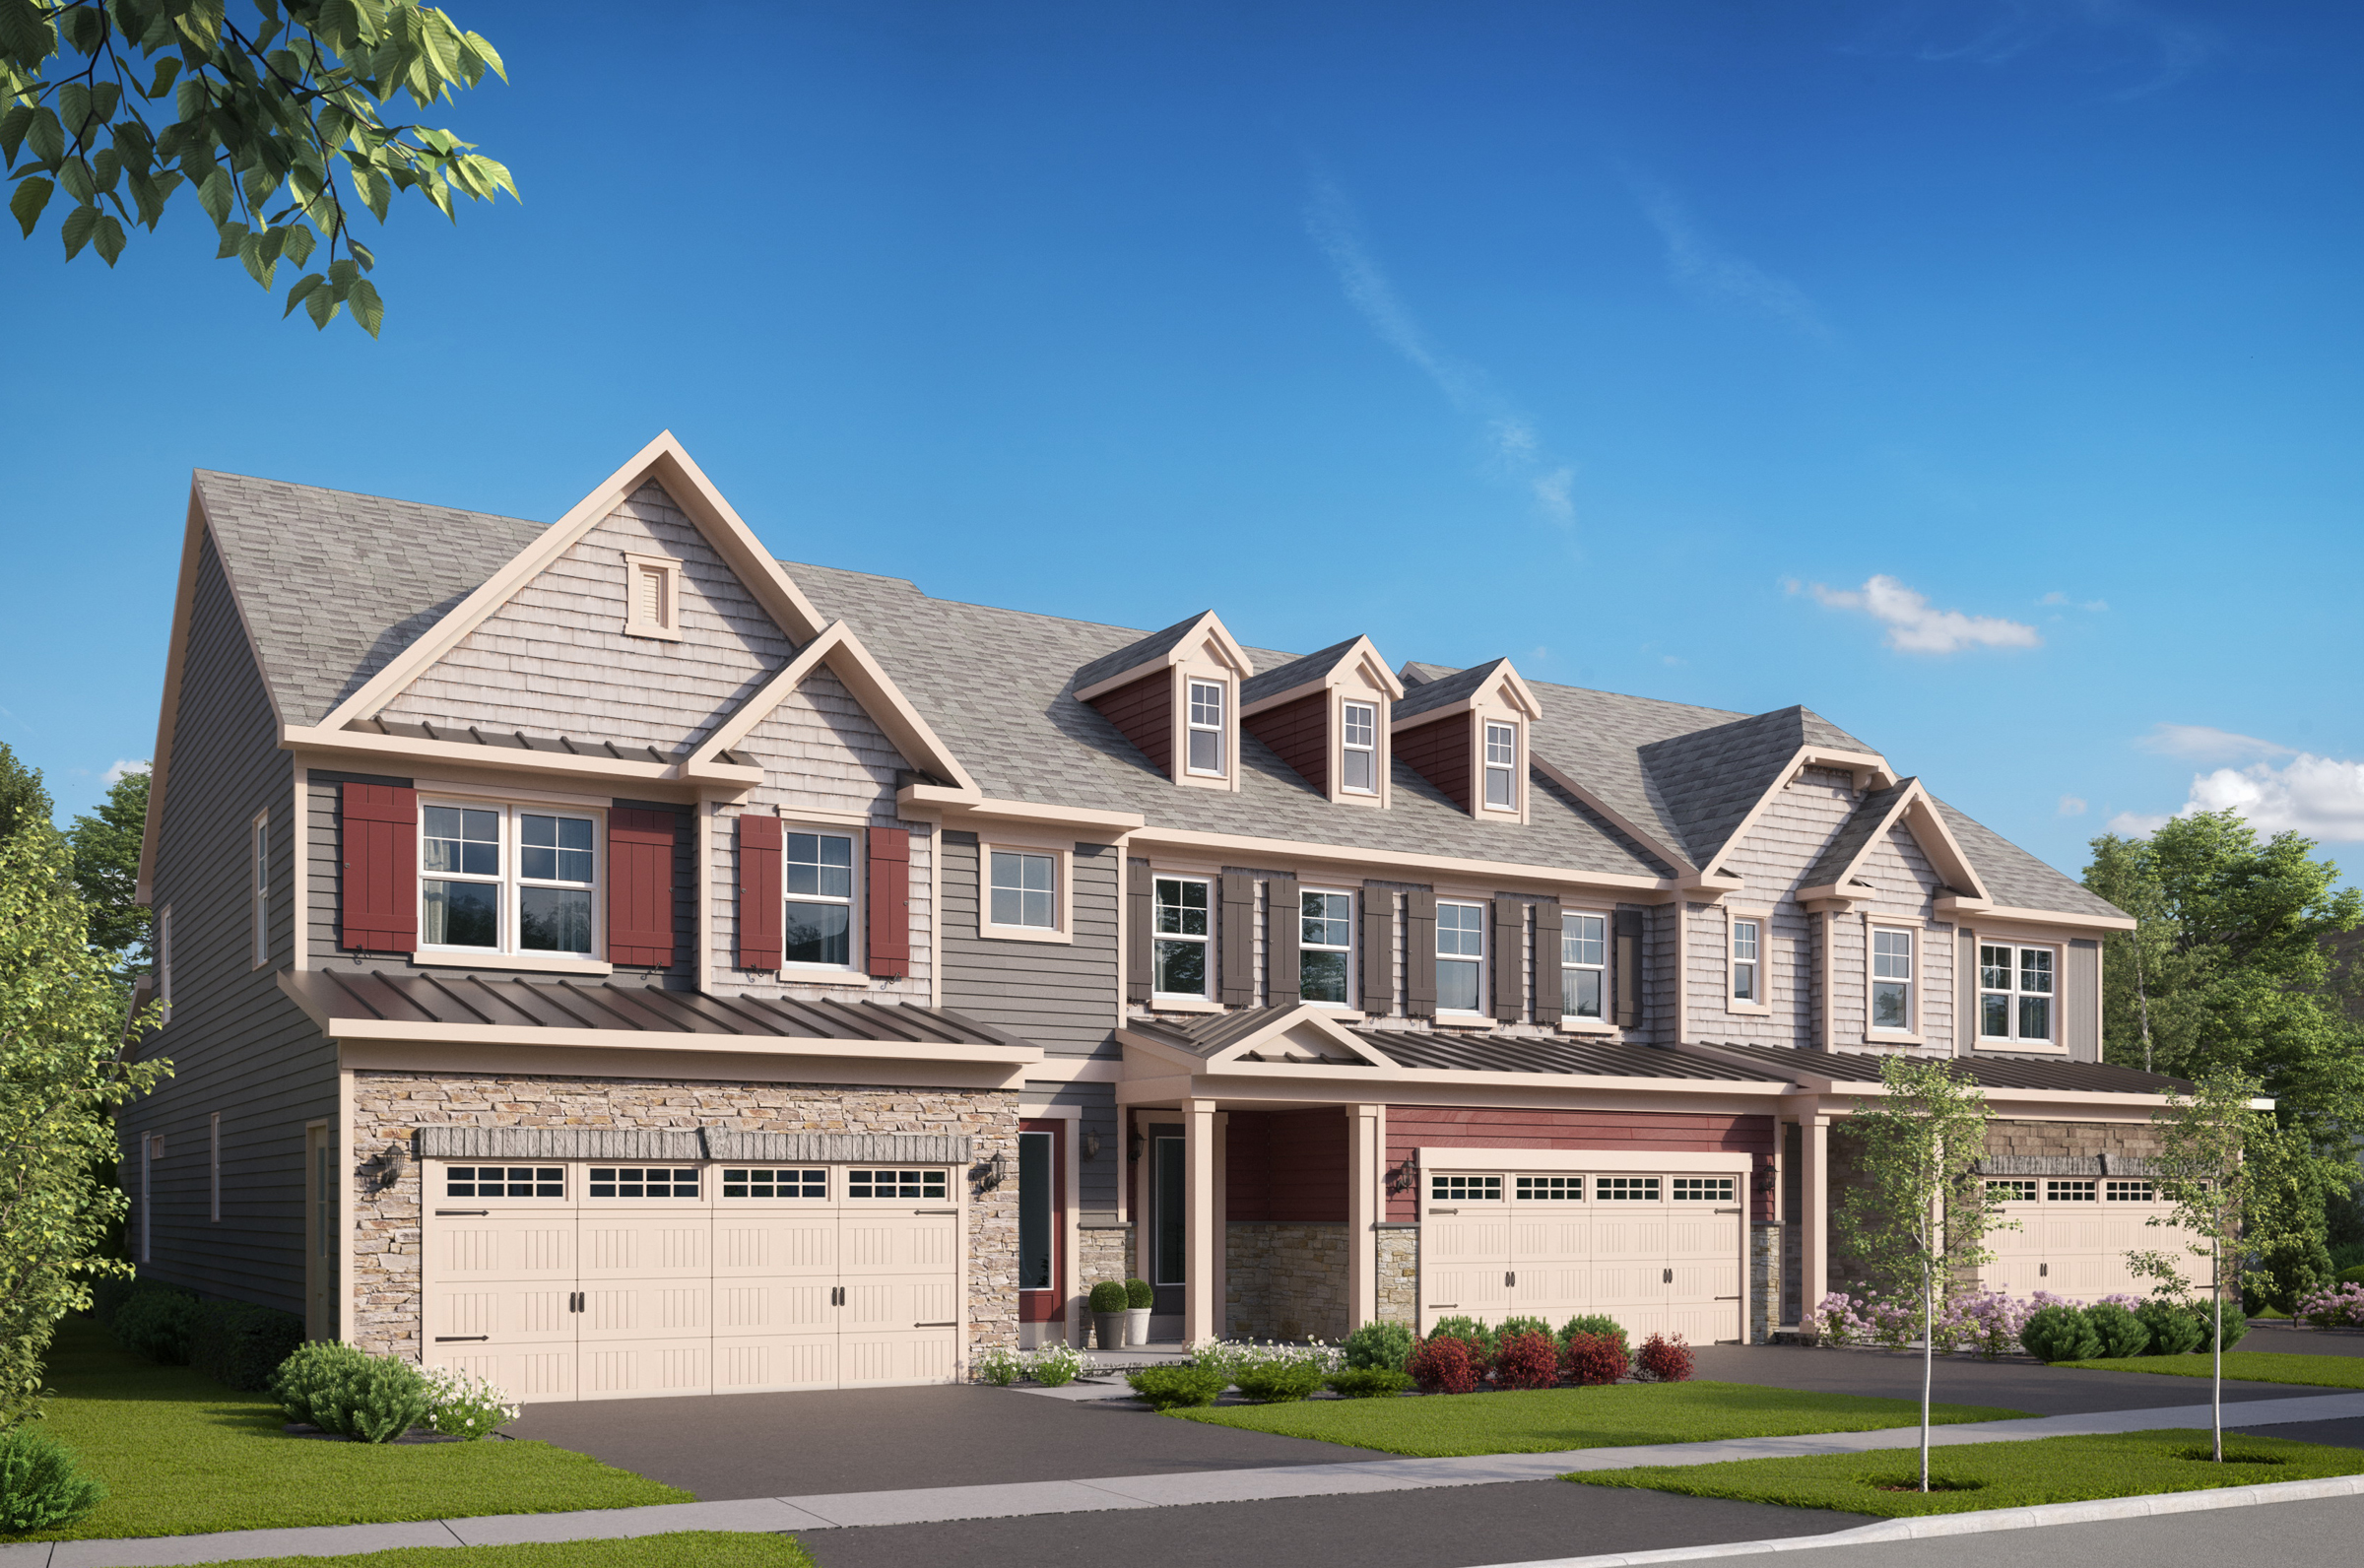 westminster new homes at brunswick crossing (1)